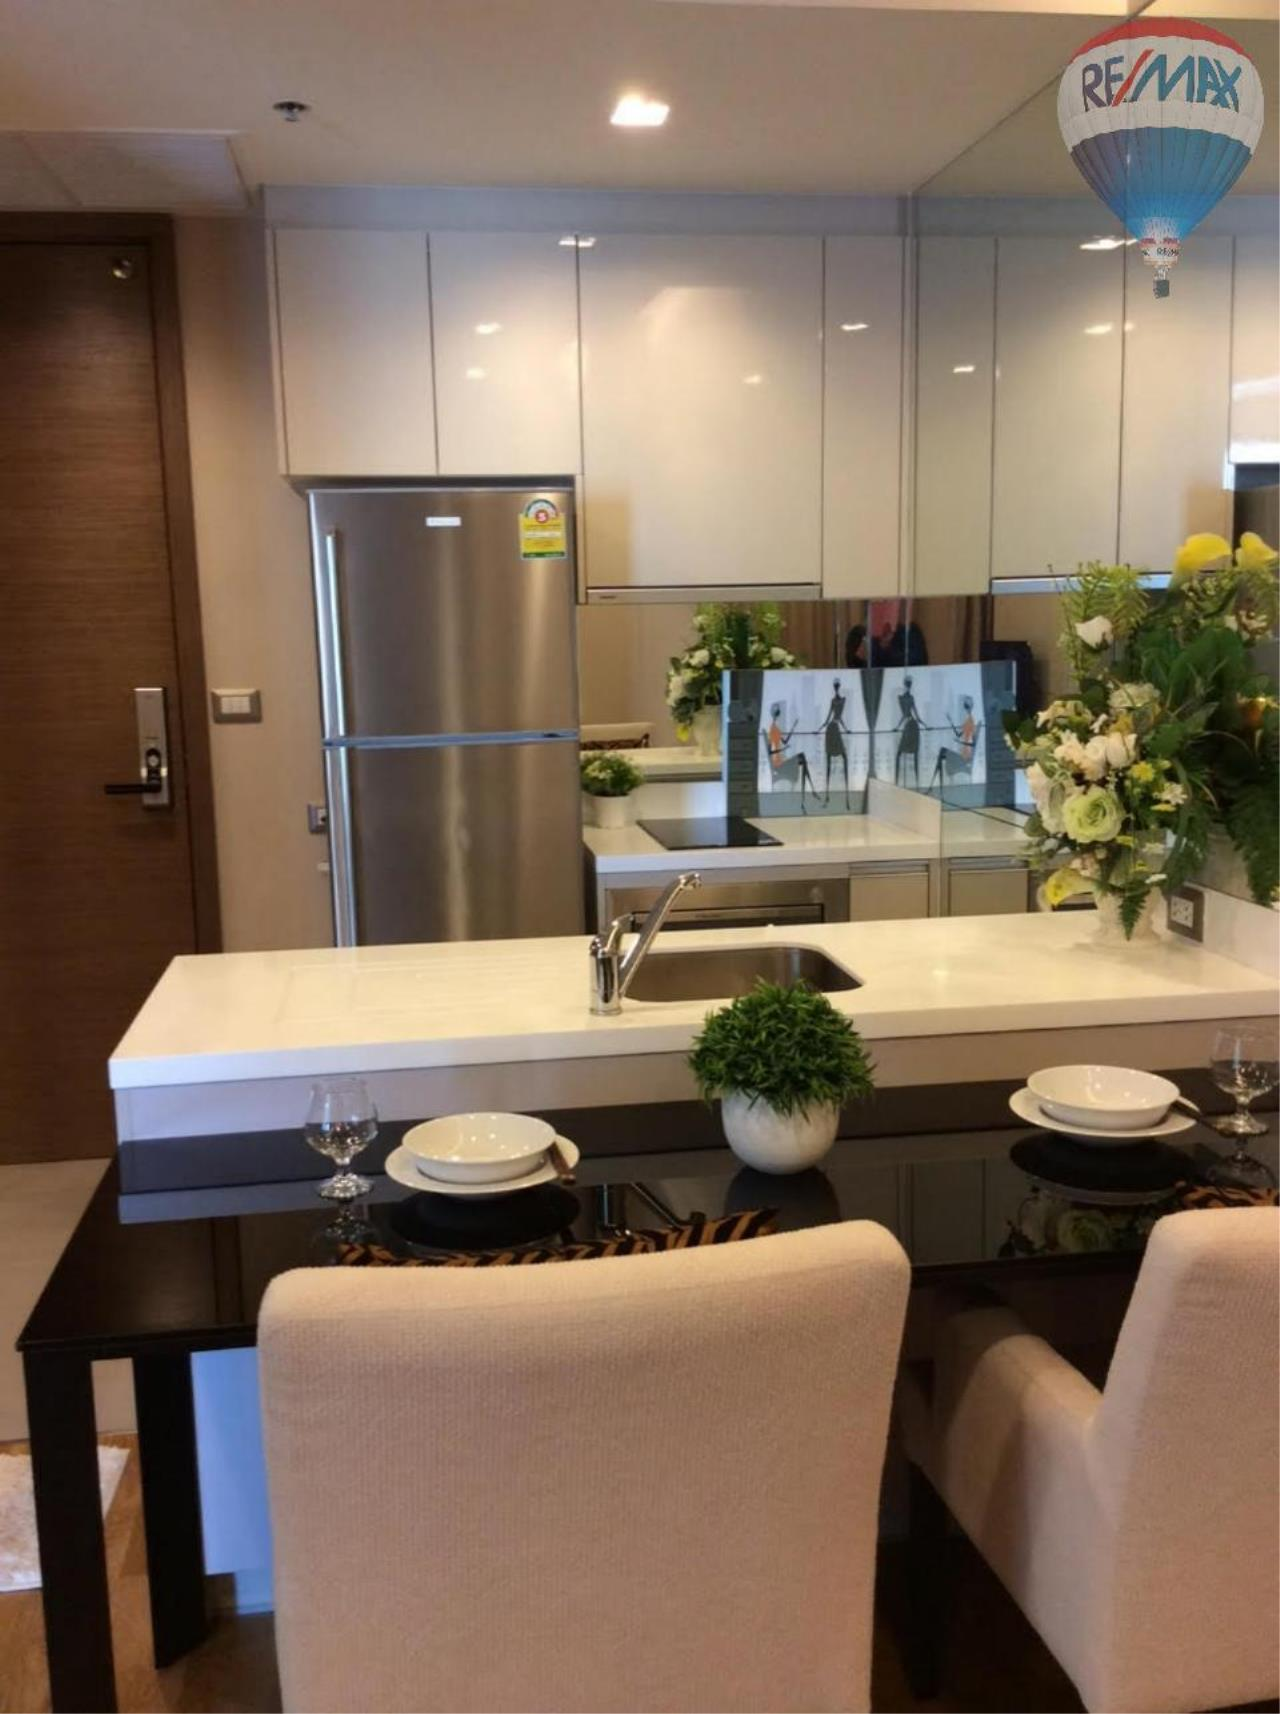 RE/MAX Properties Agency's 1 Bedroom 46.5 Sq.M. for sale in The Address Sathorn 1